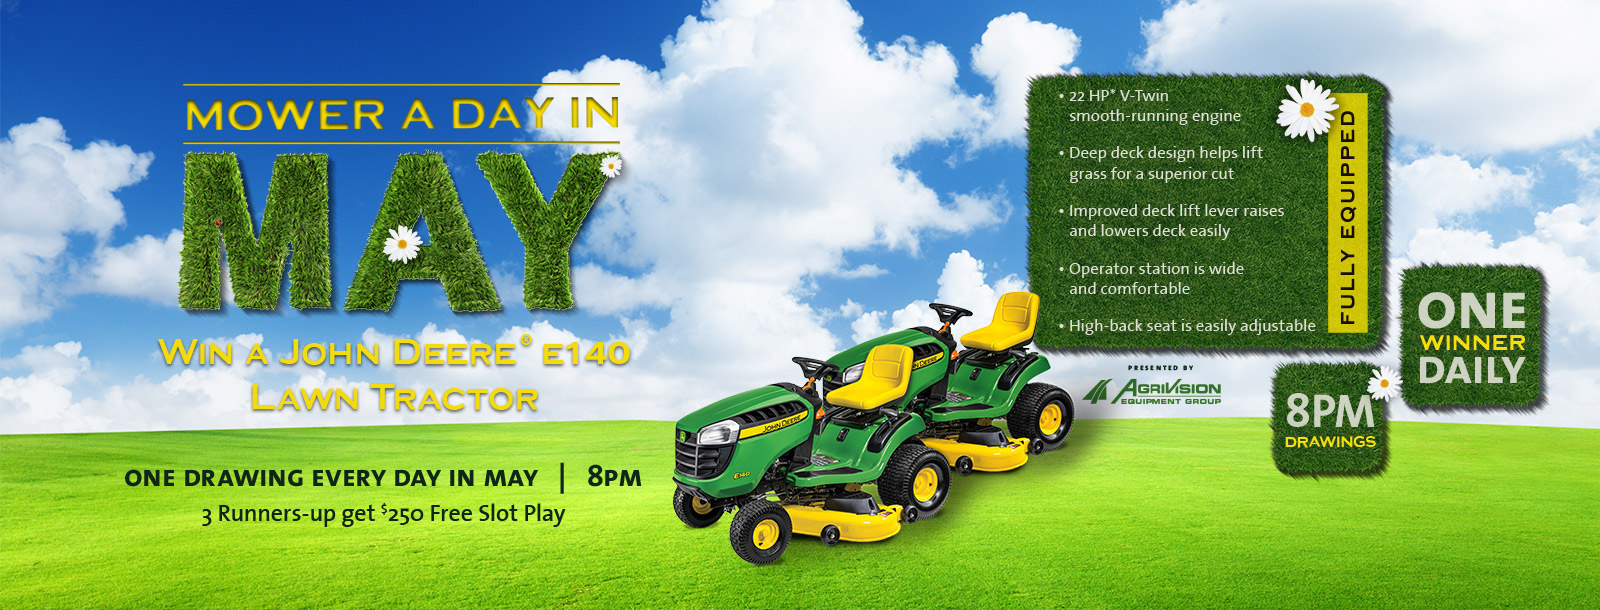 mower a day may promo